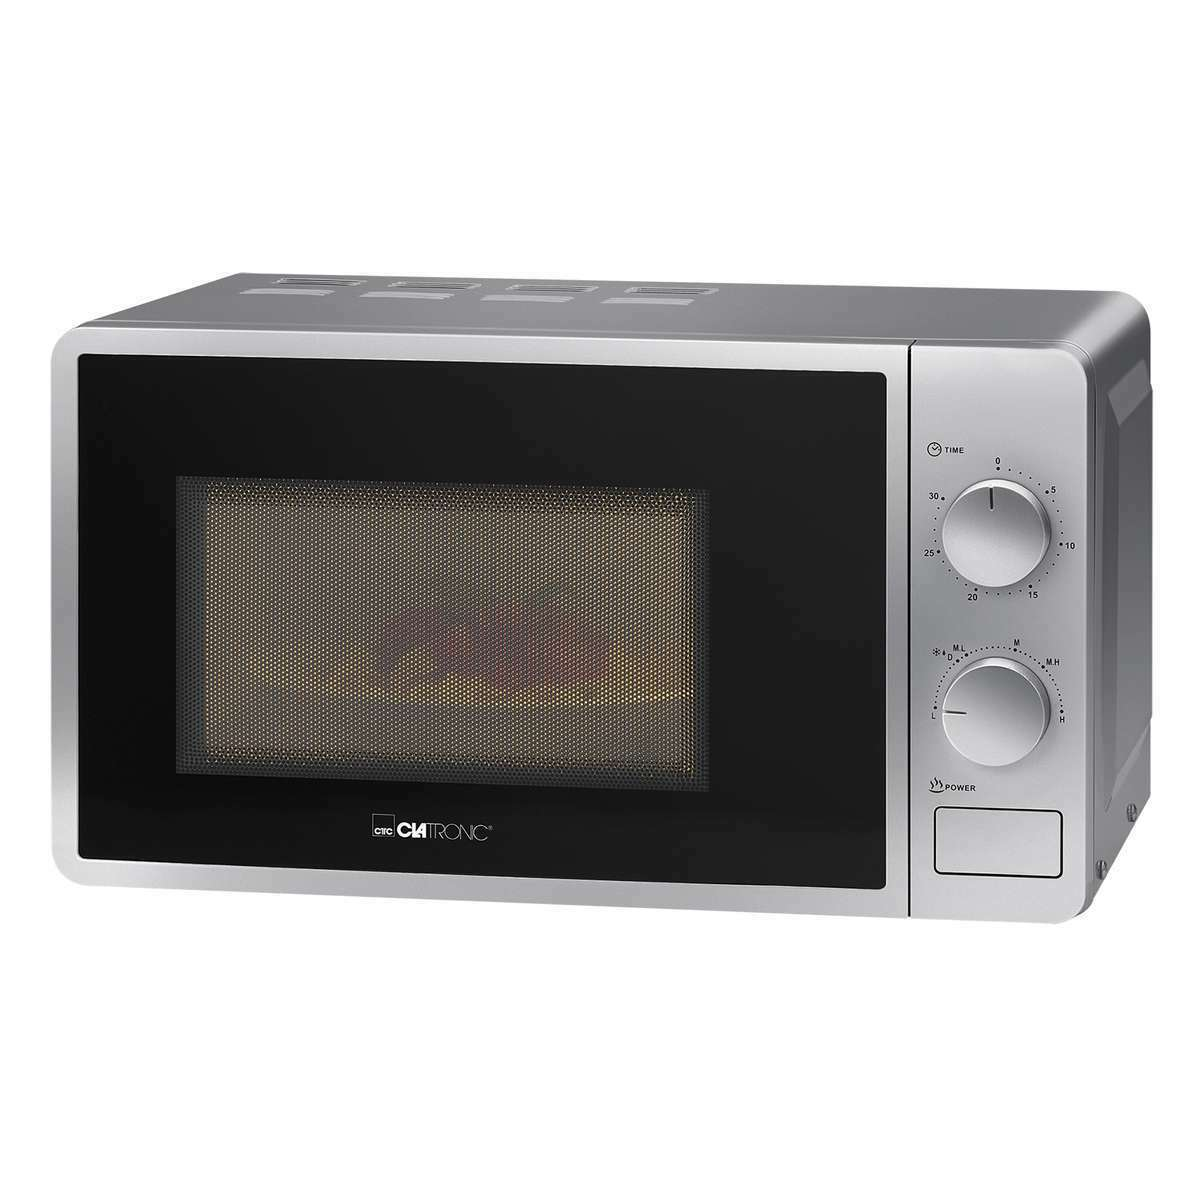 CLATRONIC MW 791 Mikrowelle Microwelle Microwave mit Grill 20 Liter silber